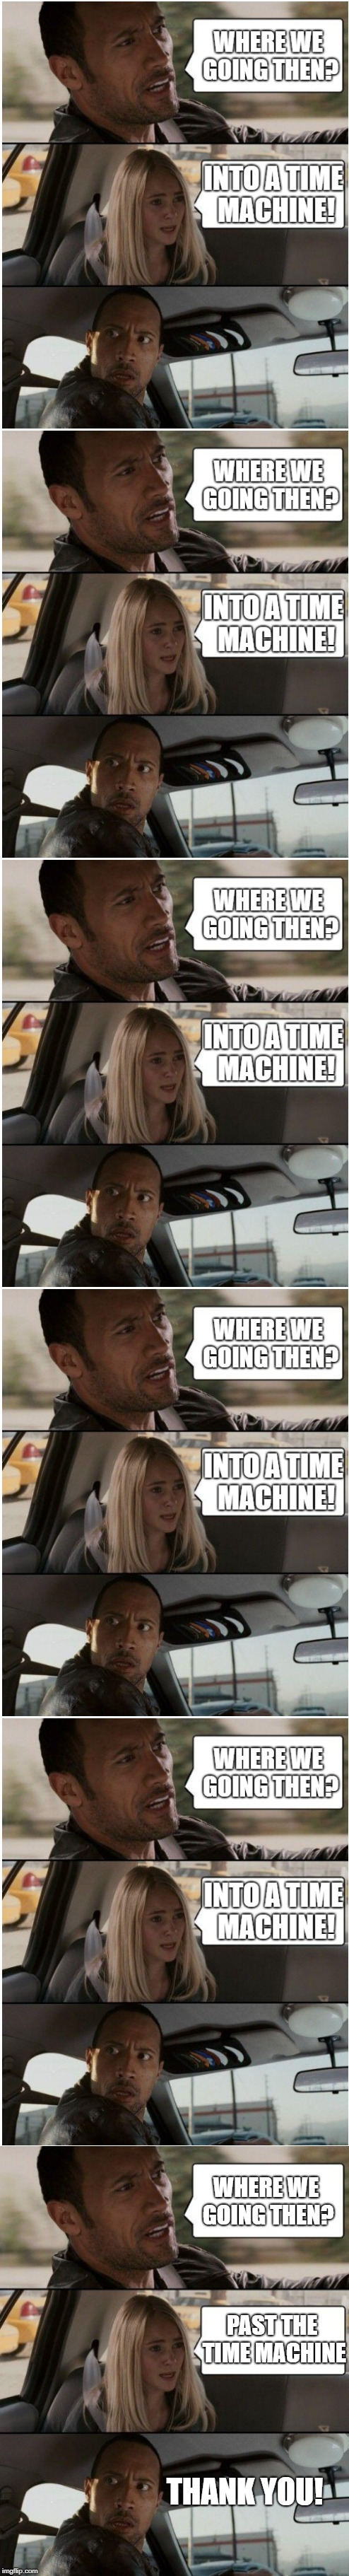 TheRockDriving.exe has stopped responding | WHERE WE GOING THEN? PAST THE TIME MACHINE THANK YOU! | image tagged in the rock driving,memes,thisdoeshaveanend,long,other,confusing | made w/ Imgflip meme maker